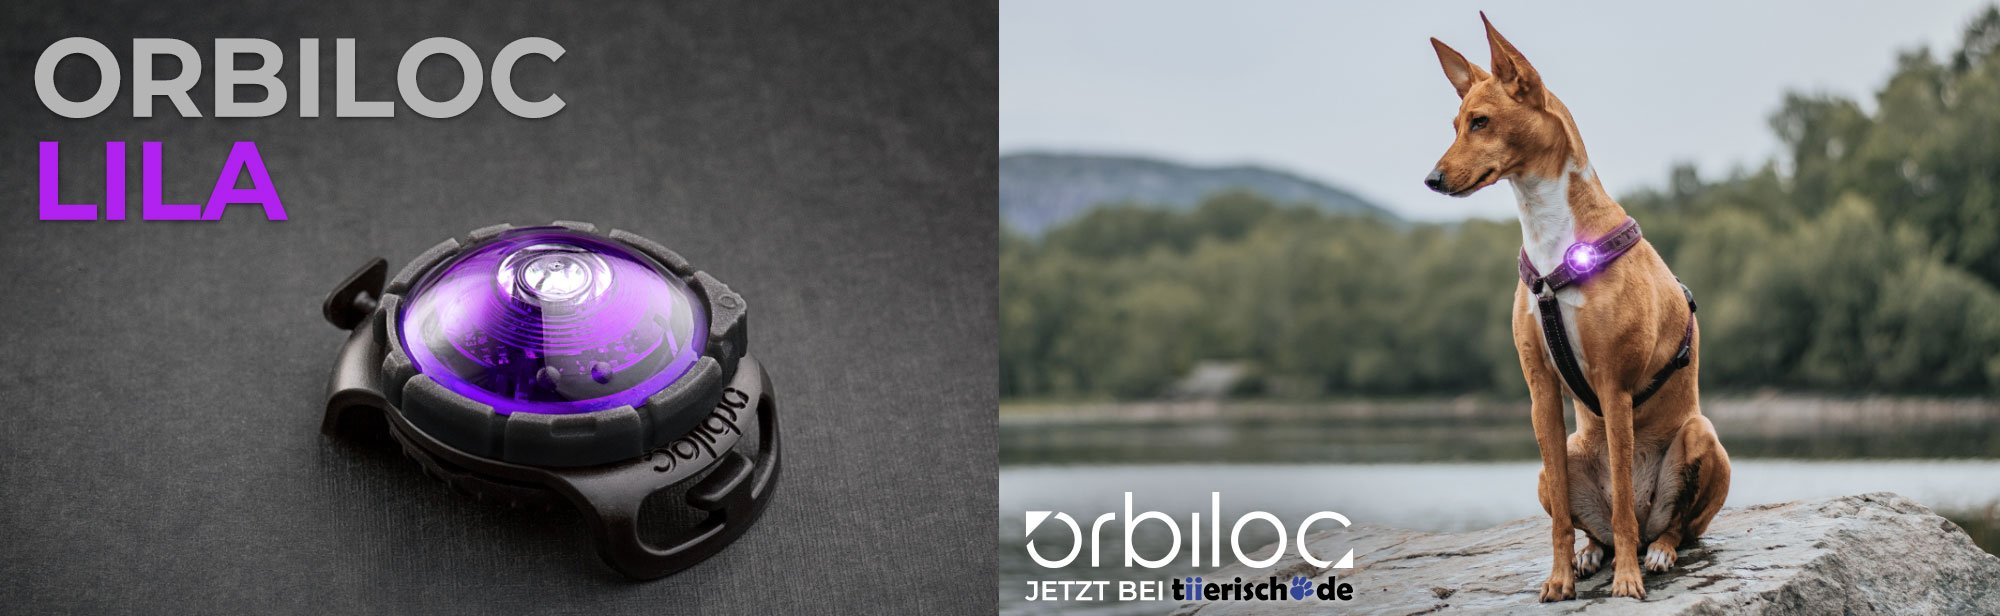 Orbiloc - The Safety Light, Bild 1